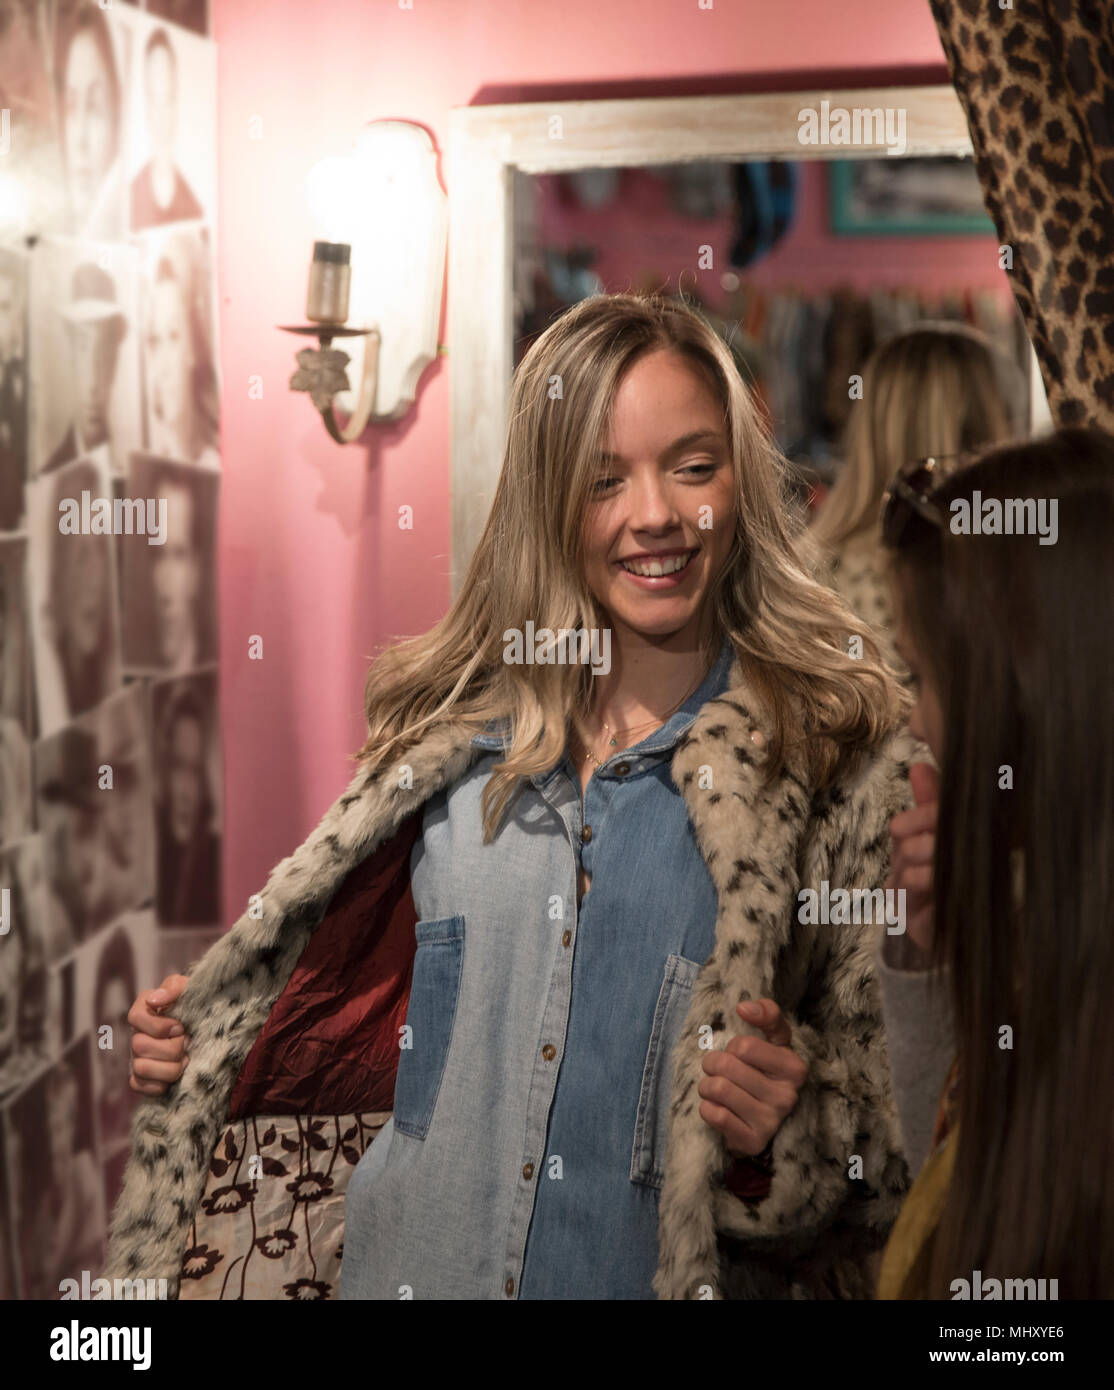 Young woman trying on vintage clothes in thrift store - Stock Image